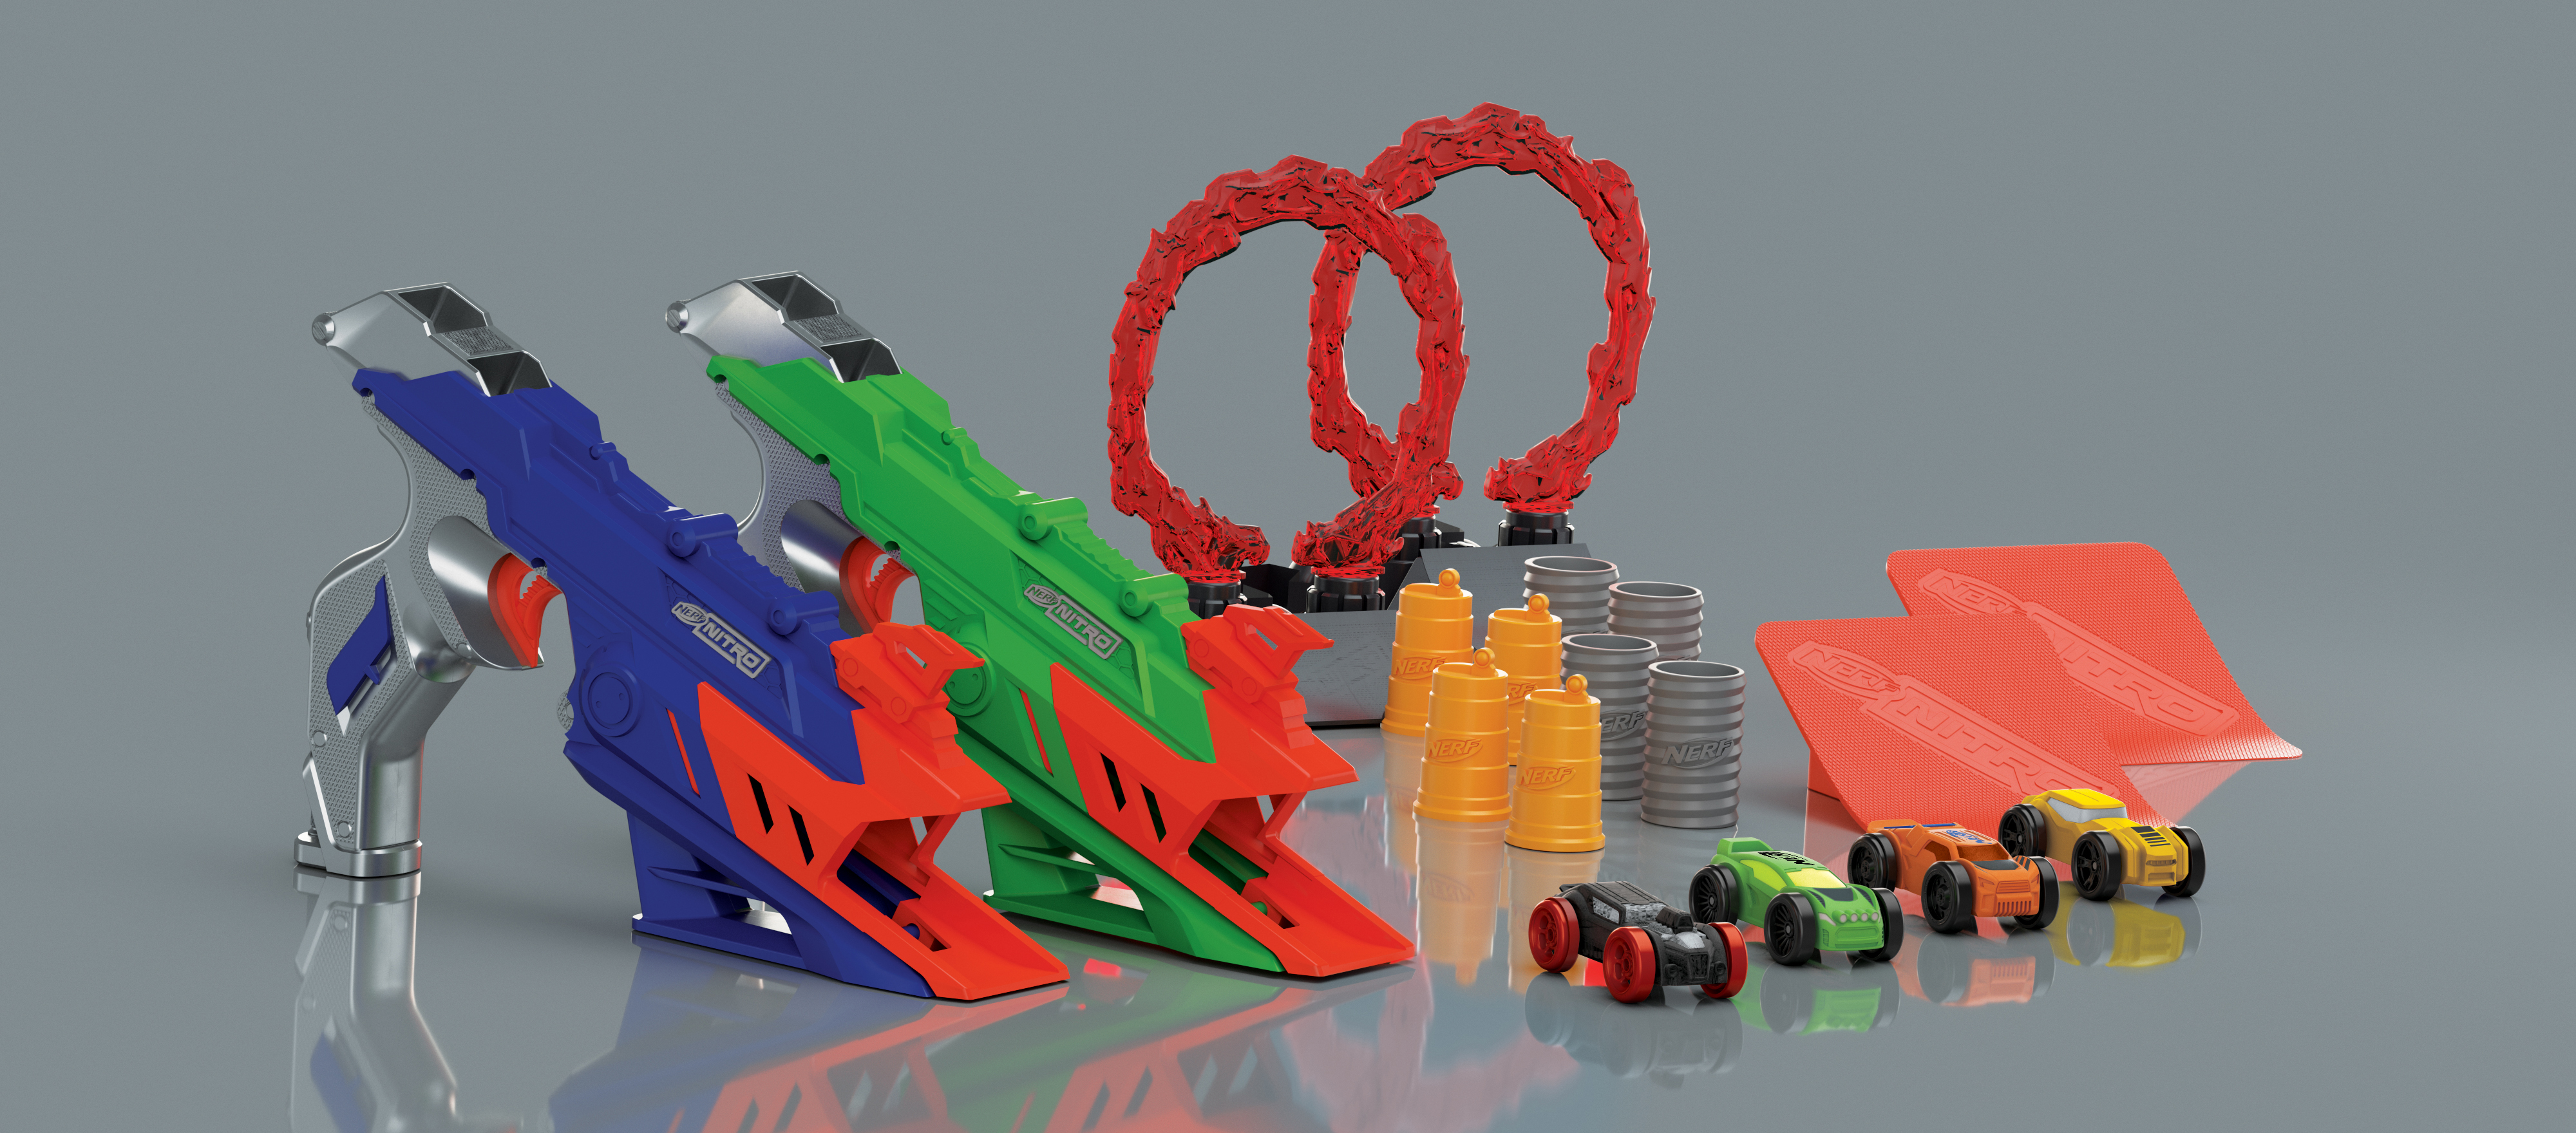 Hasbro's Nerf brand this year is debuting Nerf Nitro, a line that features foam toy cars.